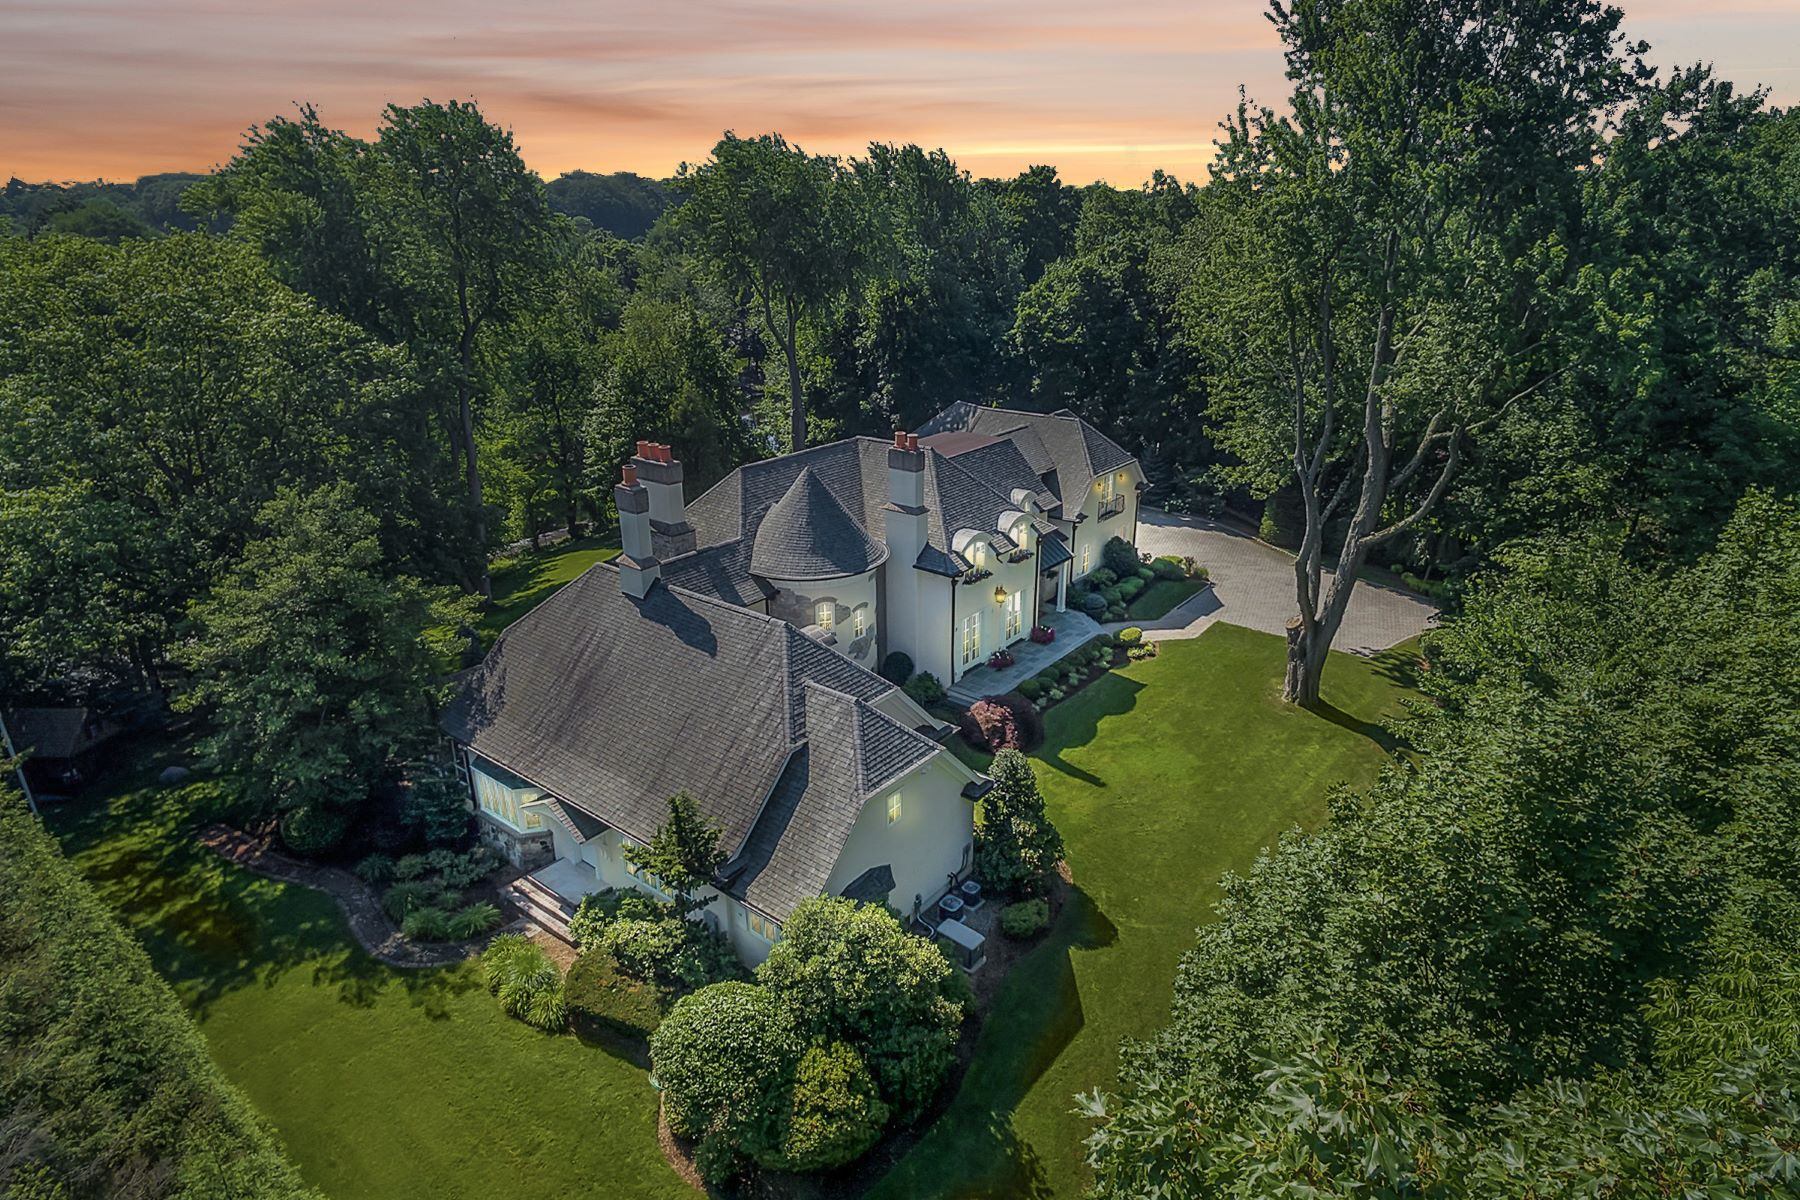 Single Family Homes for Sale at Stunning English Manor 551 Overlook Drive Wyckoff, New Jersey 07481 United States